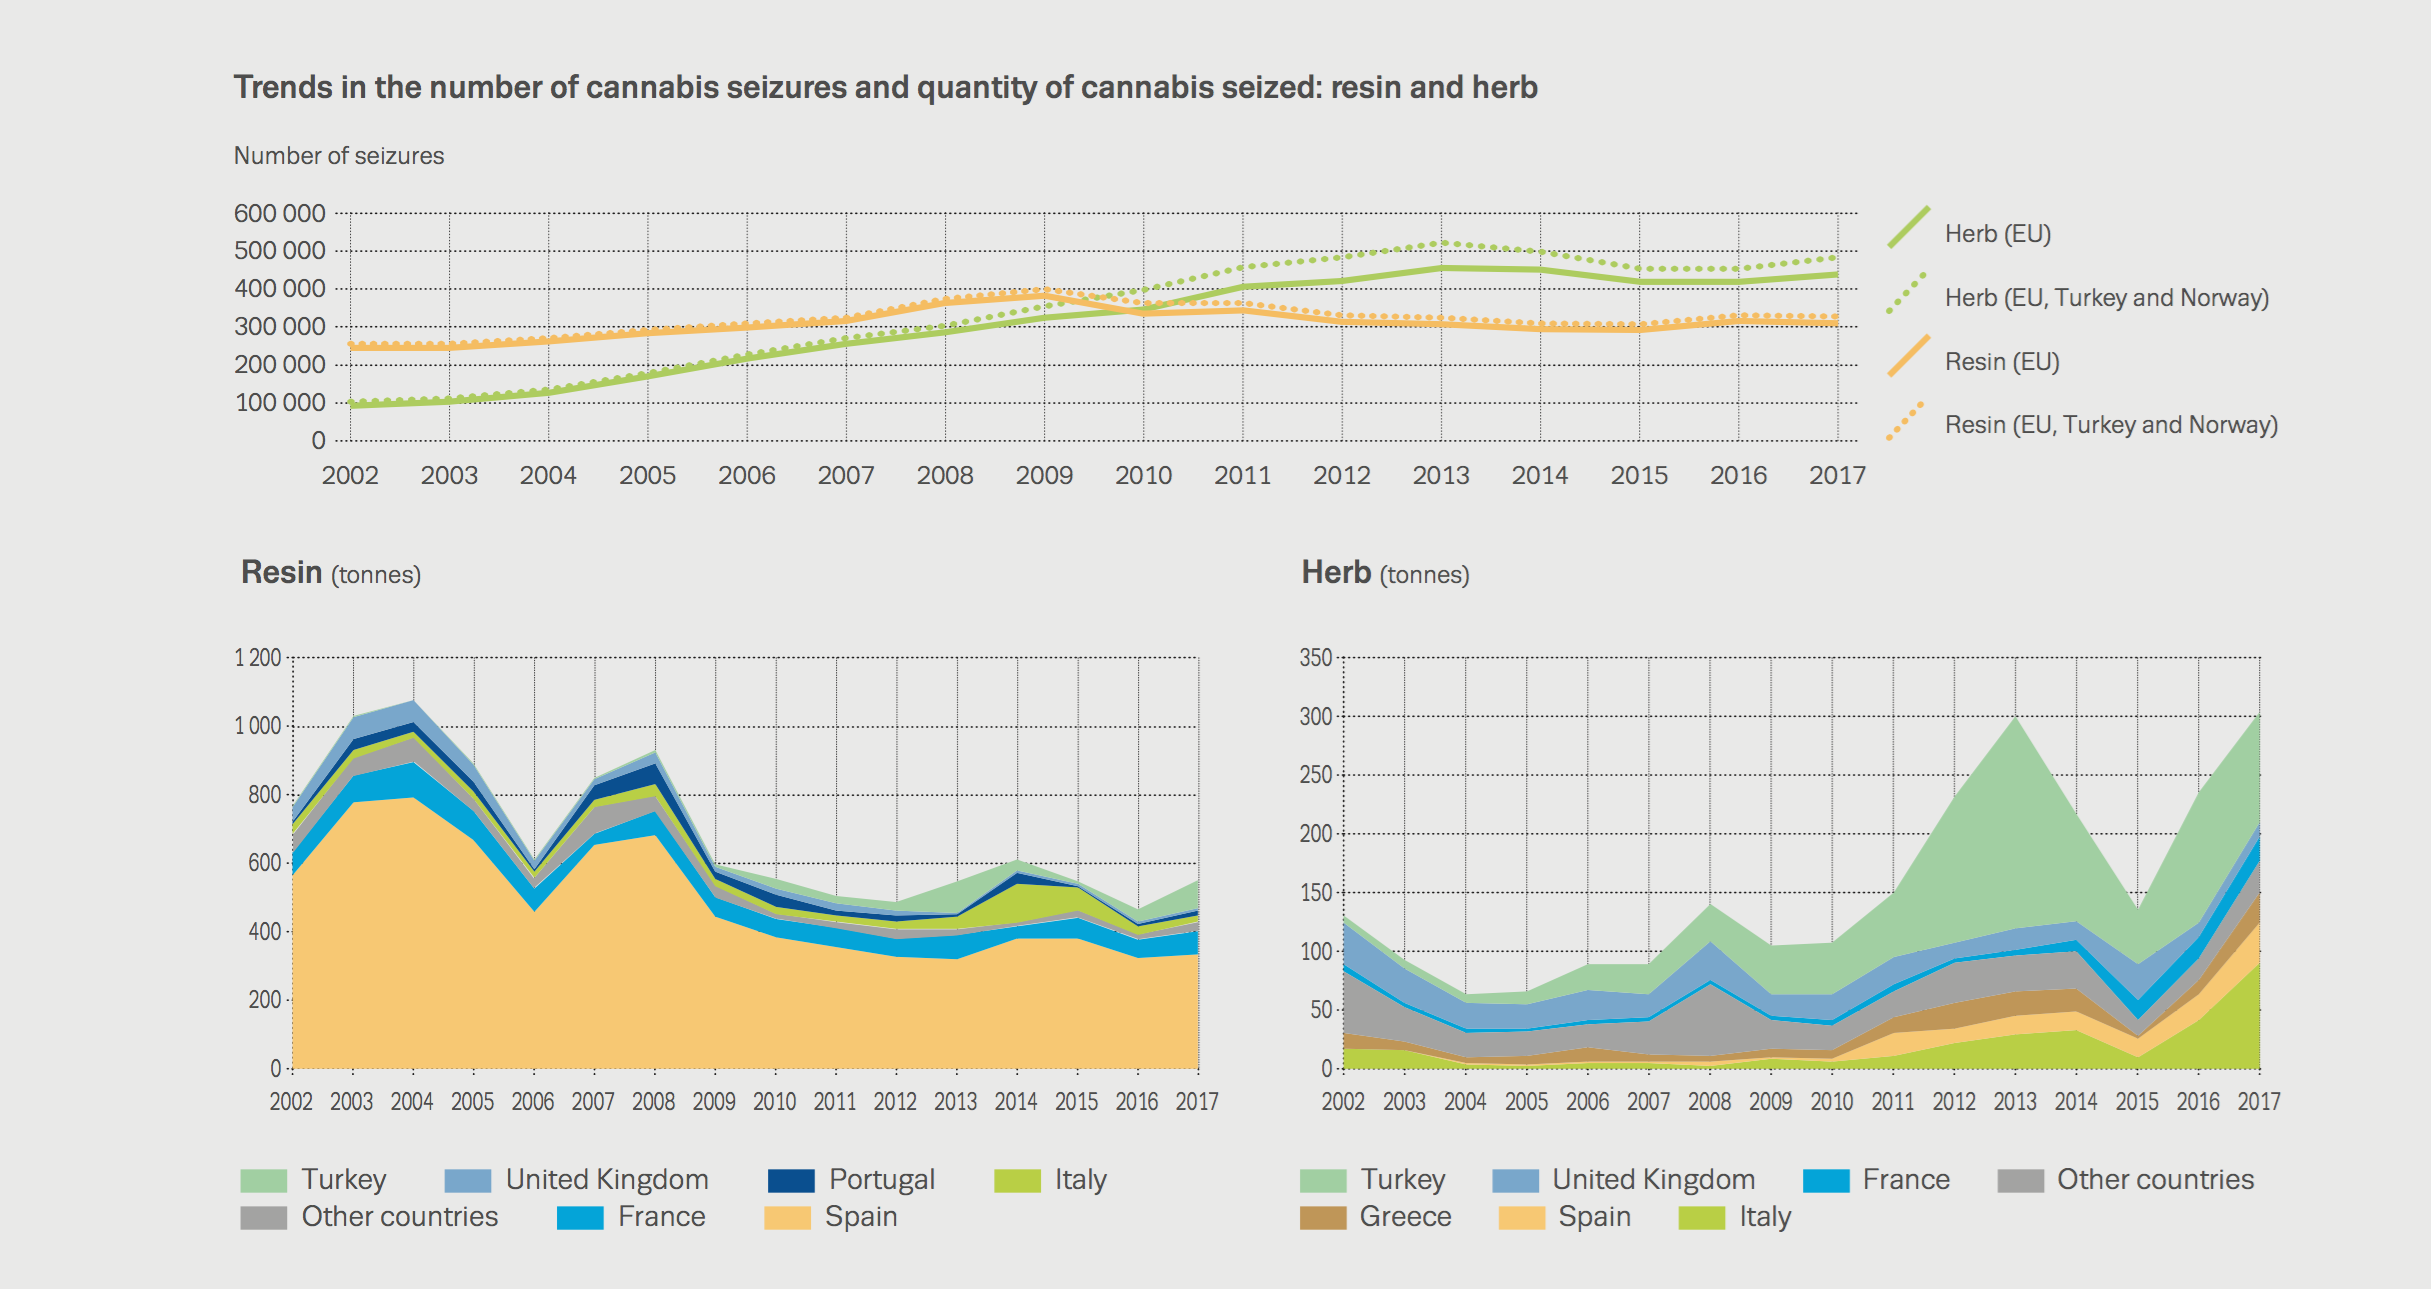 trends in the number of cannabis seizures